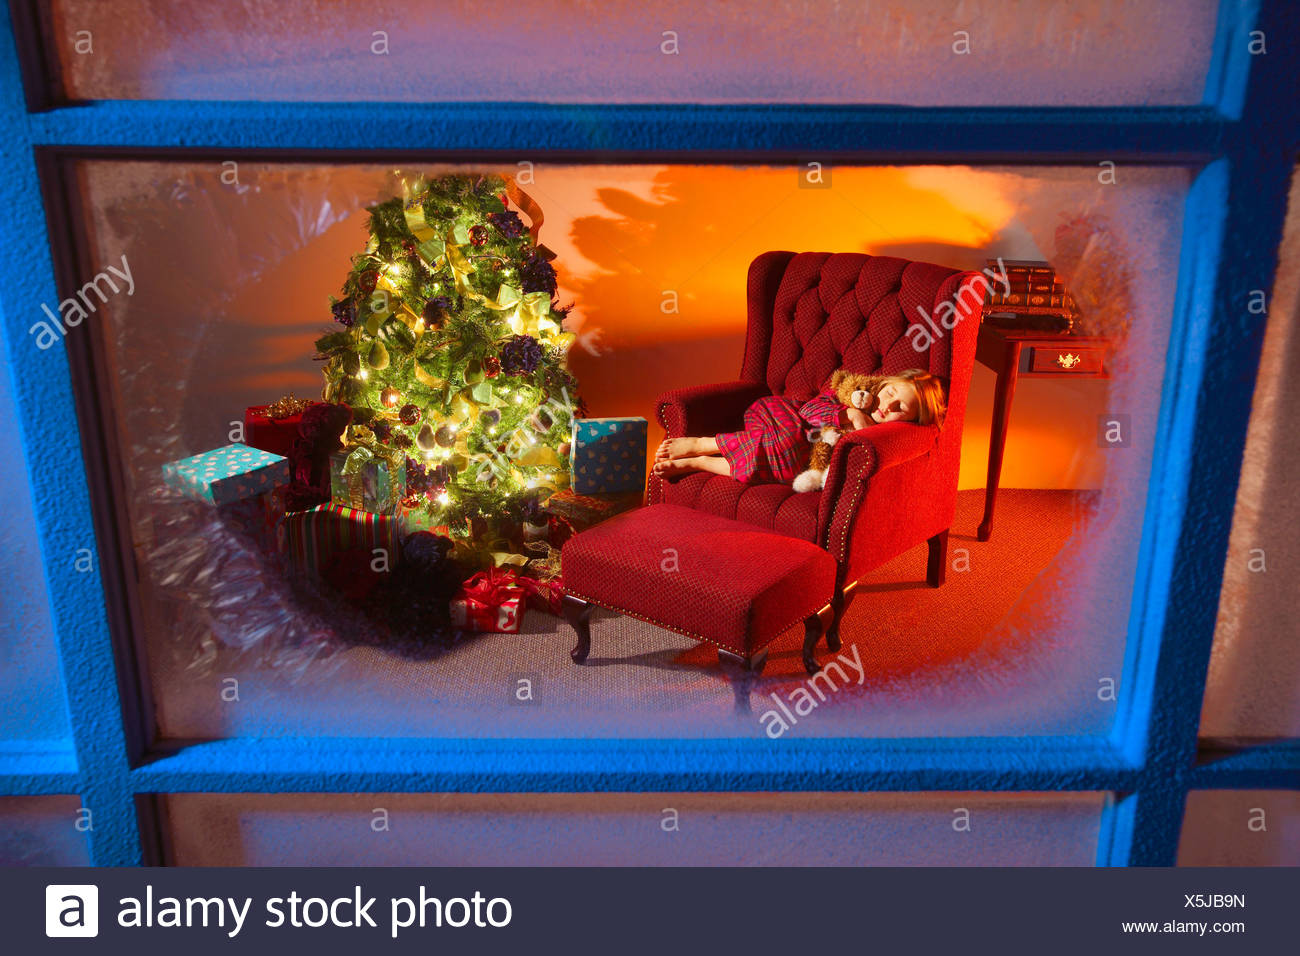 Girl sleeping in house decorated for Christmas Stock Photo